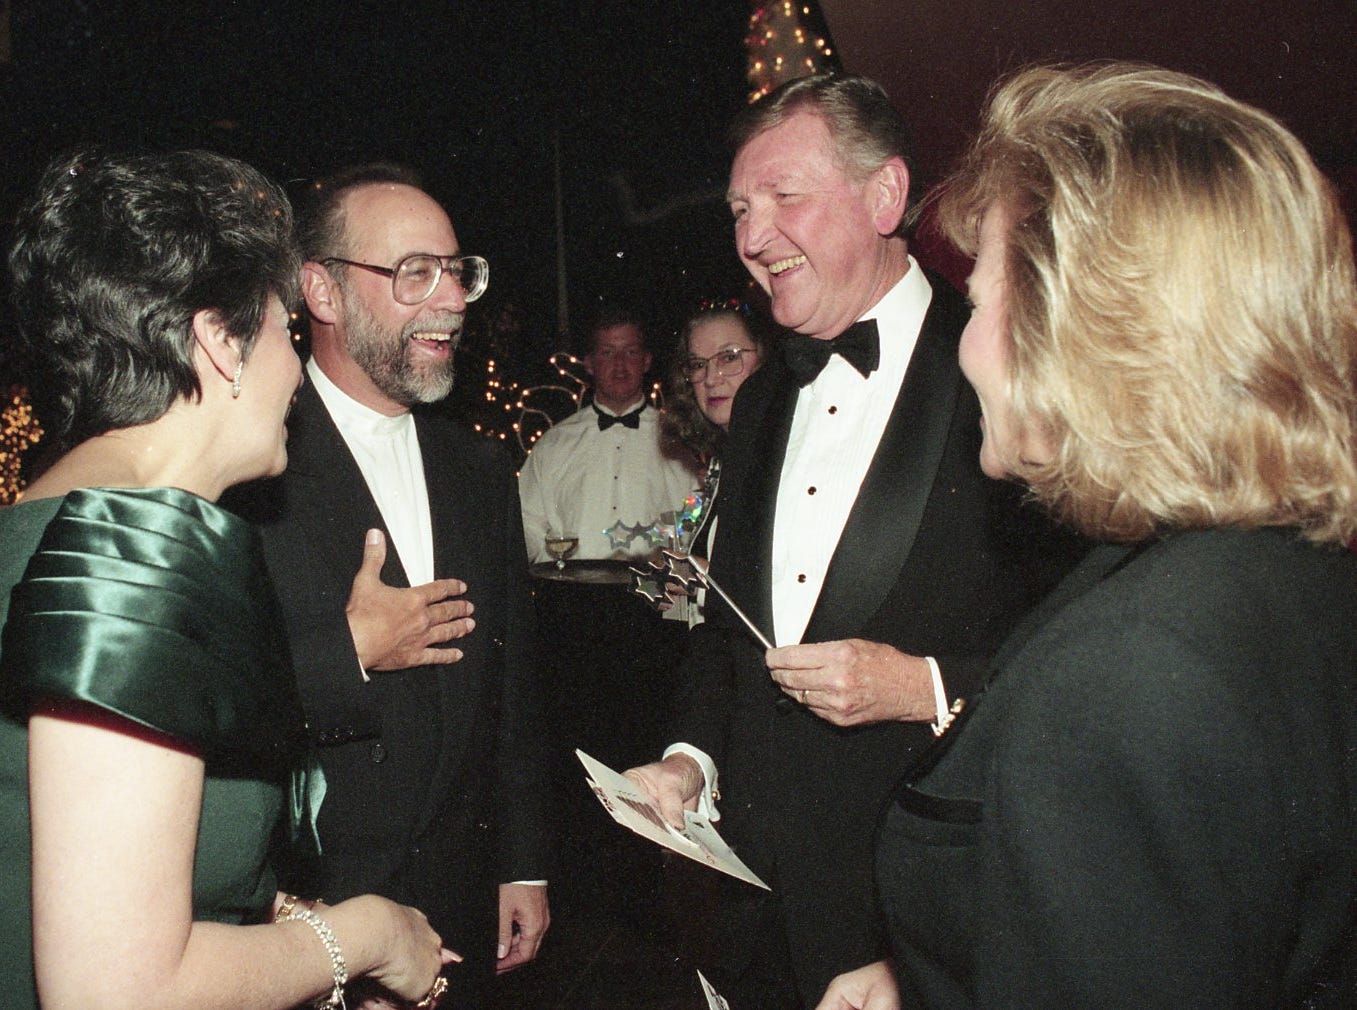 President and CEO of Children's Hospital Bob Koppel and his wife, Ianne, left, greet Nashville couple with the Hospital Alliance of Tennessee Carl Moore and his wife, Elliott at Fantasy of Trees. November, 1994.